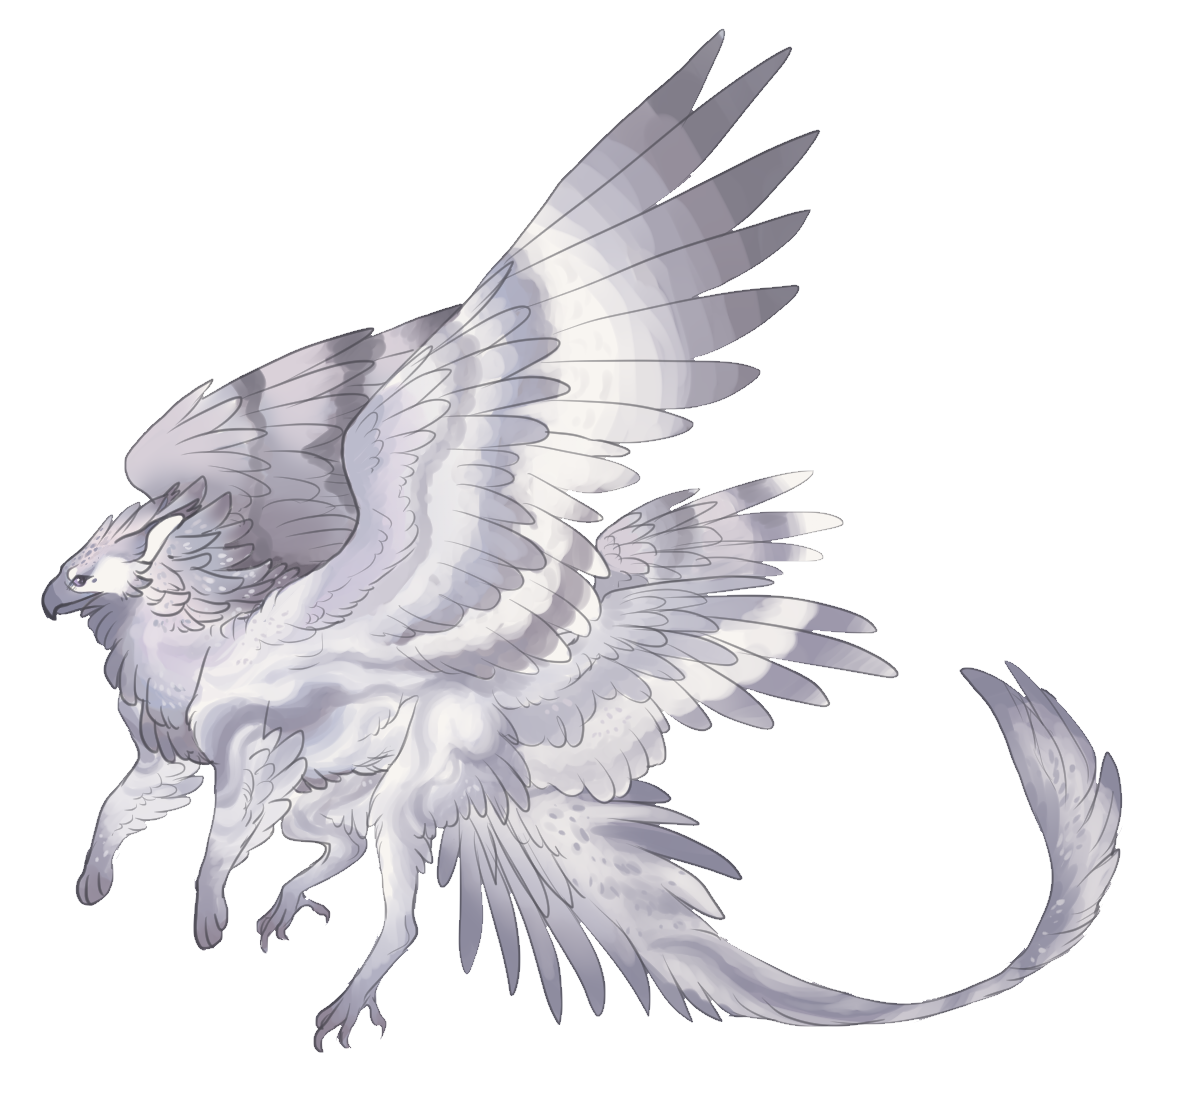 griff_thing_by_diseasedking-daur8sx.png